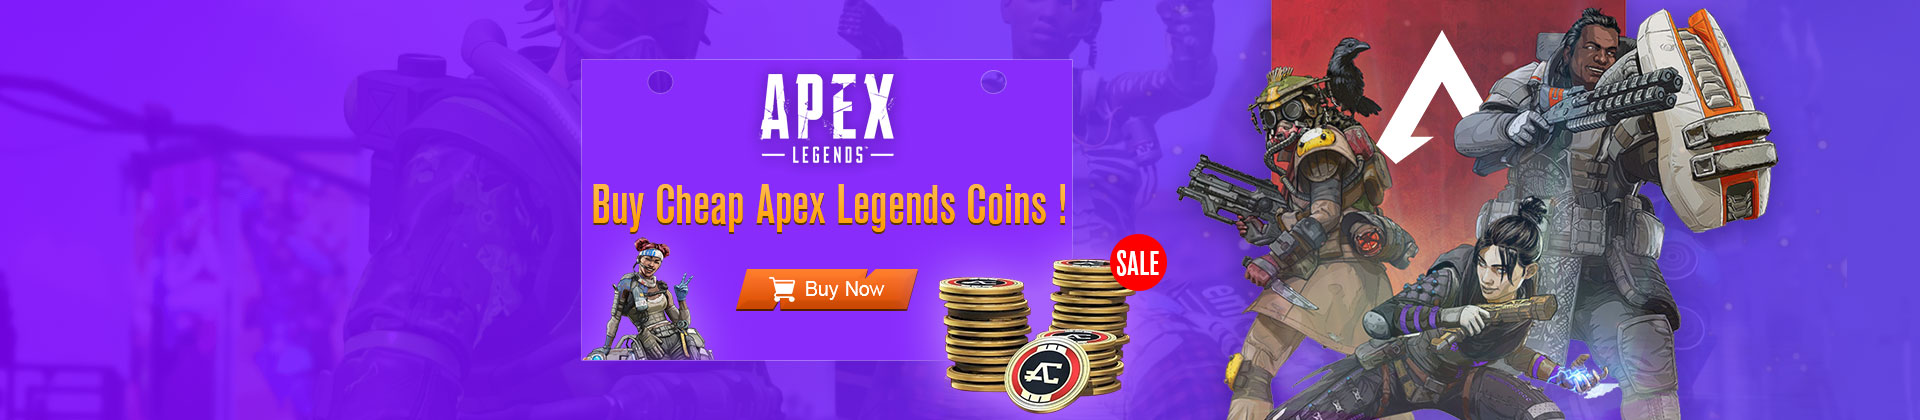 Cheap Apex Legends Coins